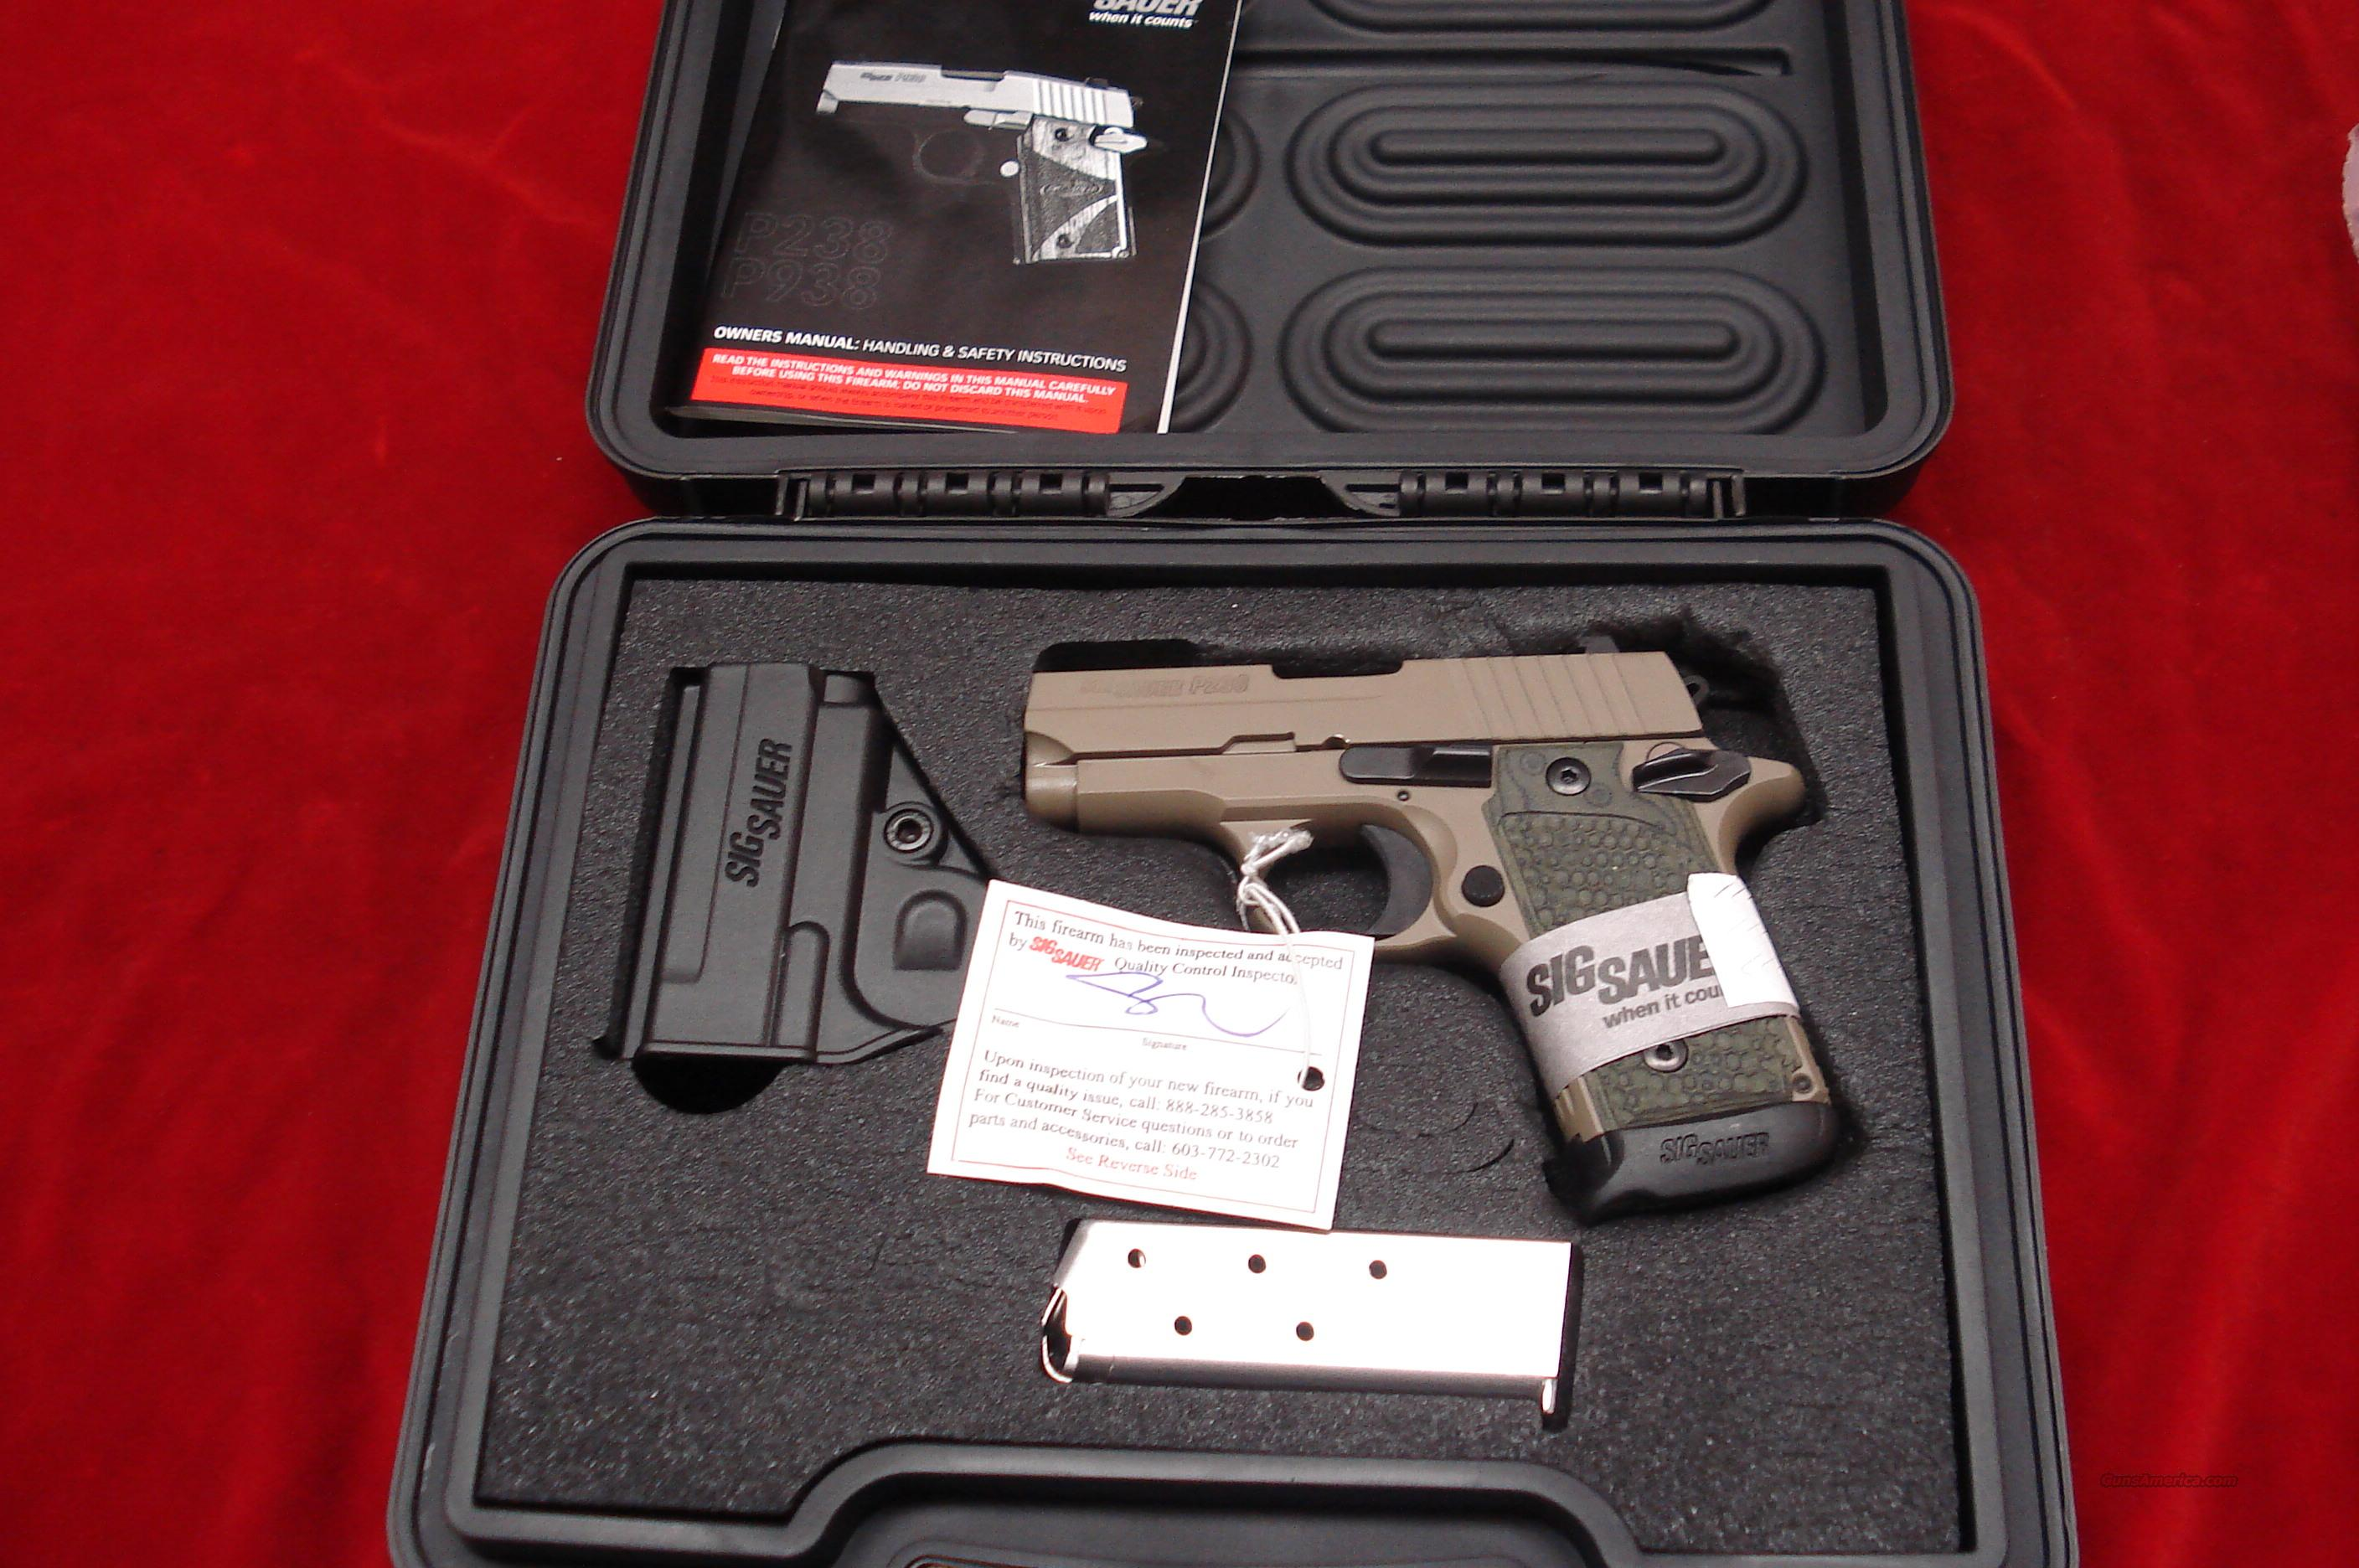 SIG SAUER 380CAL.P238 SCORPION FLAT DARK EARTH WITH  NIGHT SIGHTS NEW  Guns > Pistols > Sig - Sauer/Sigarms Pistols > Other